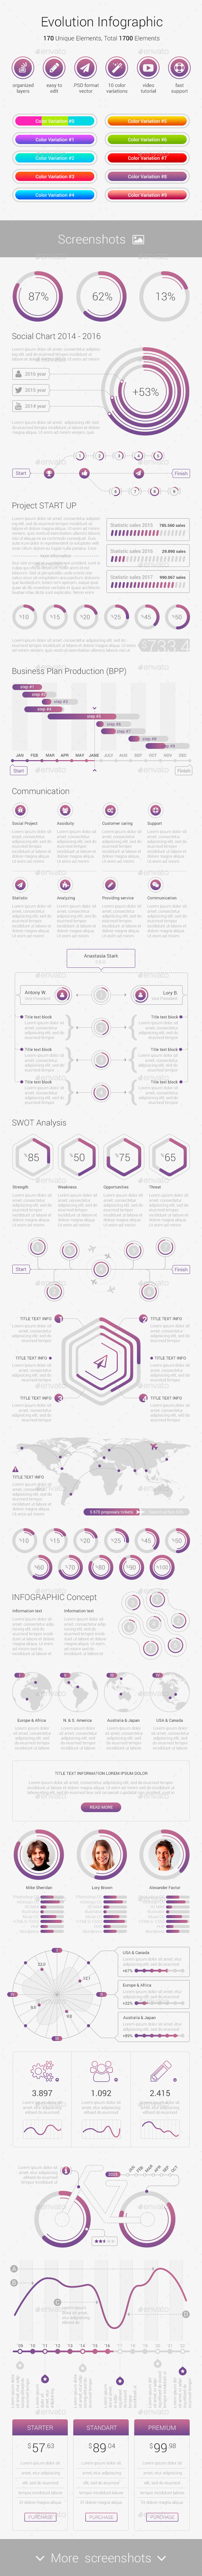 GraphicRiver Evolution Infographic 11016225